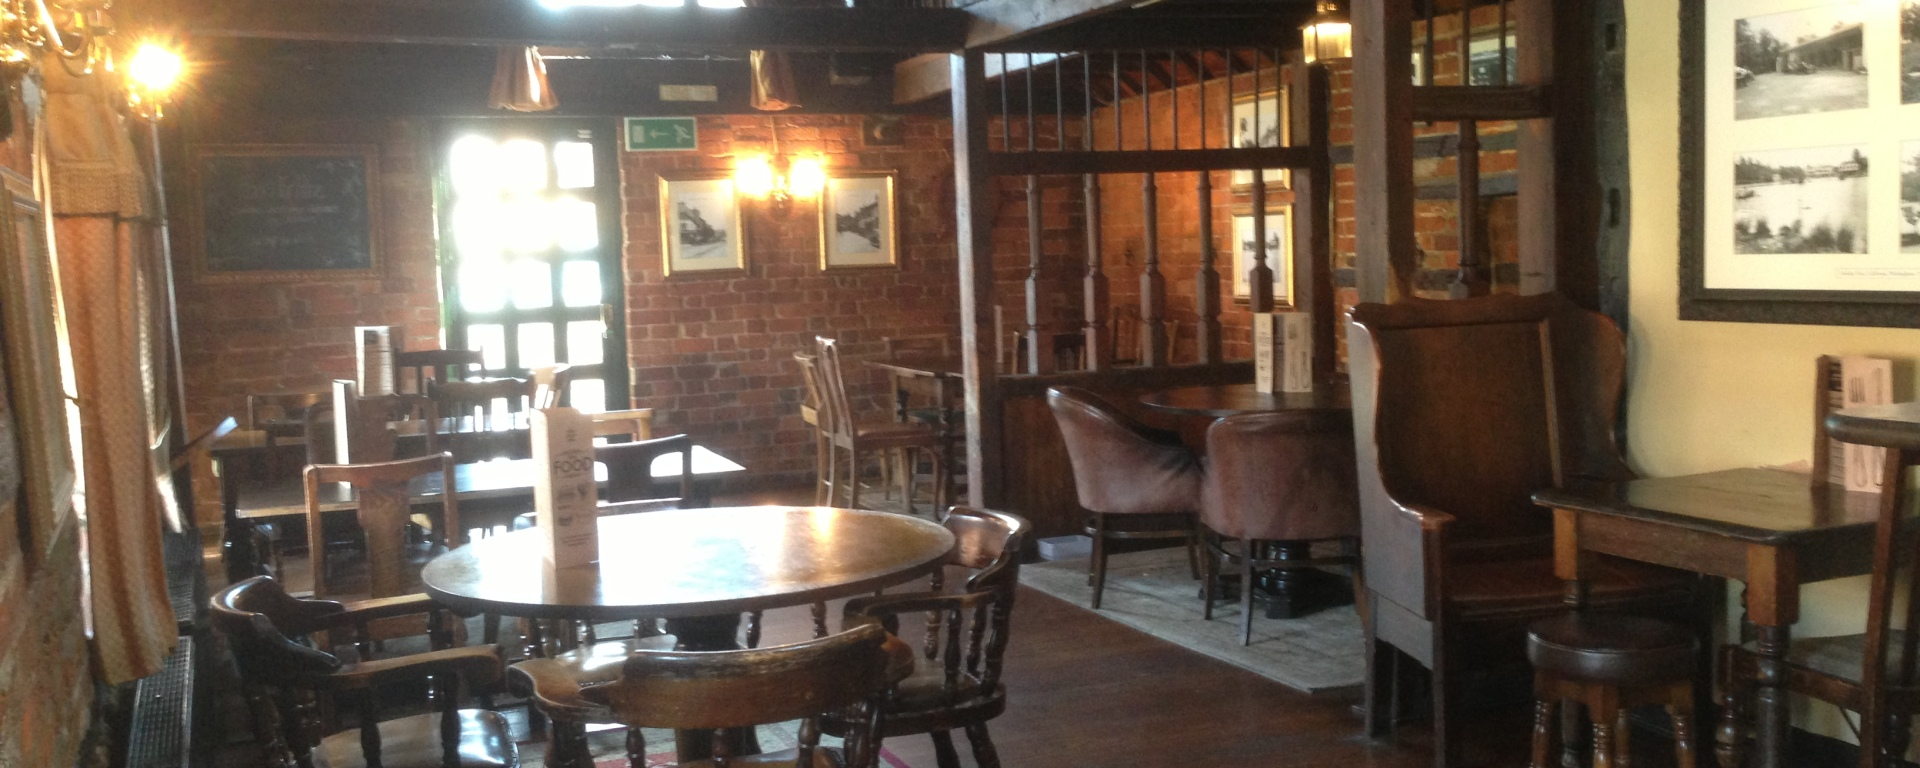 the ship inn wokingham barn area